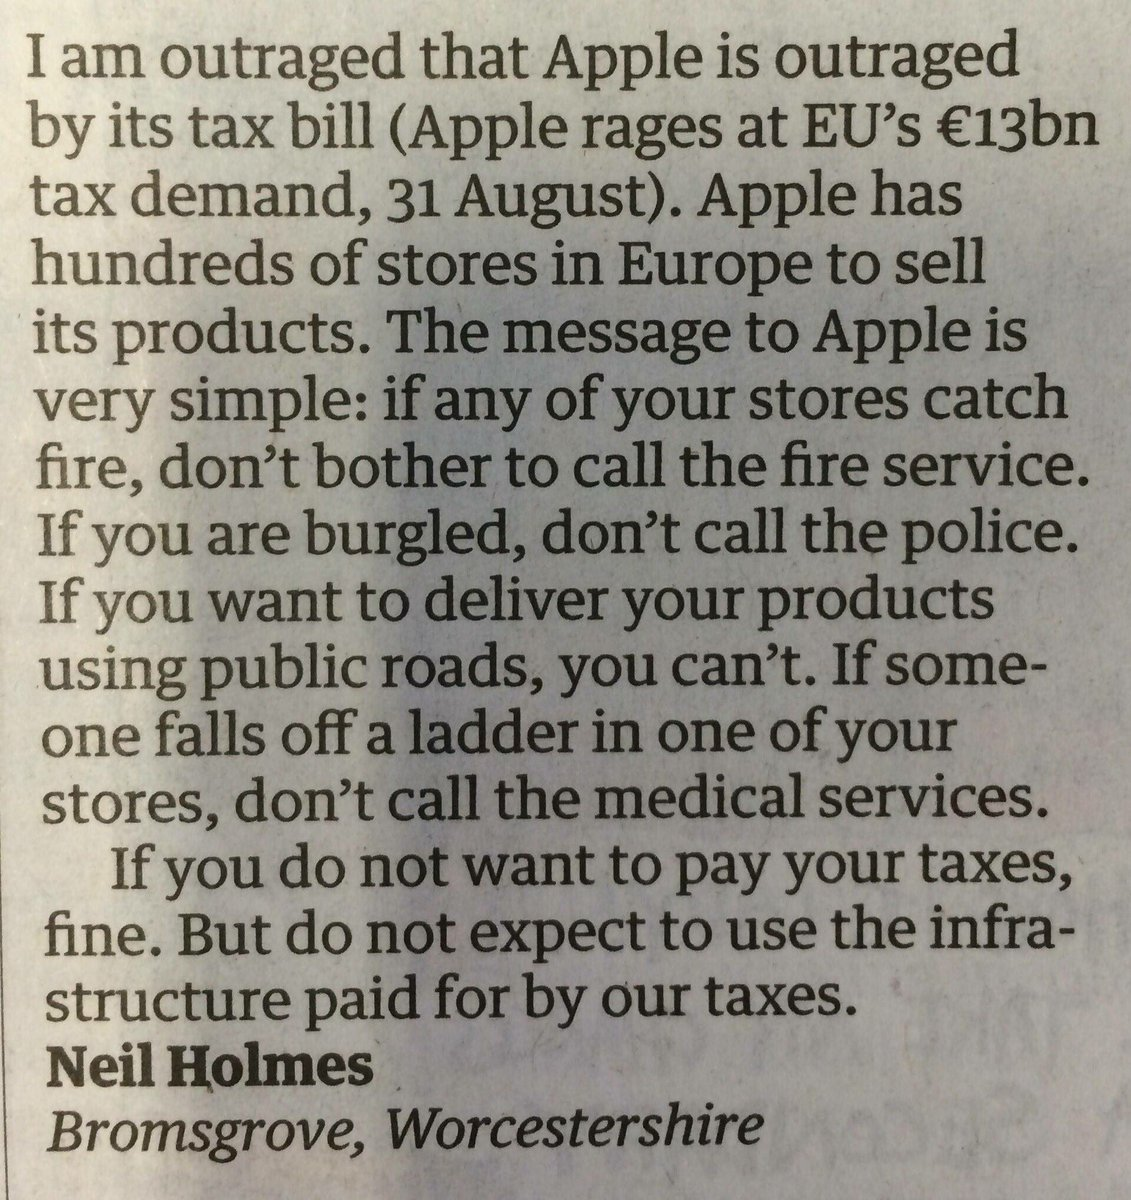 RT @JamesMelville A brilliant letter. If Apple don't want to pay tax, they shouldn't use the public services paid for by tax.